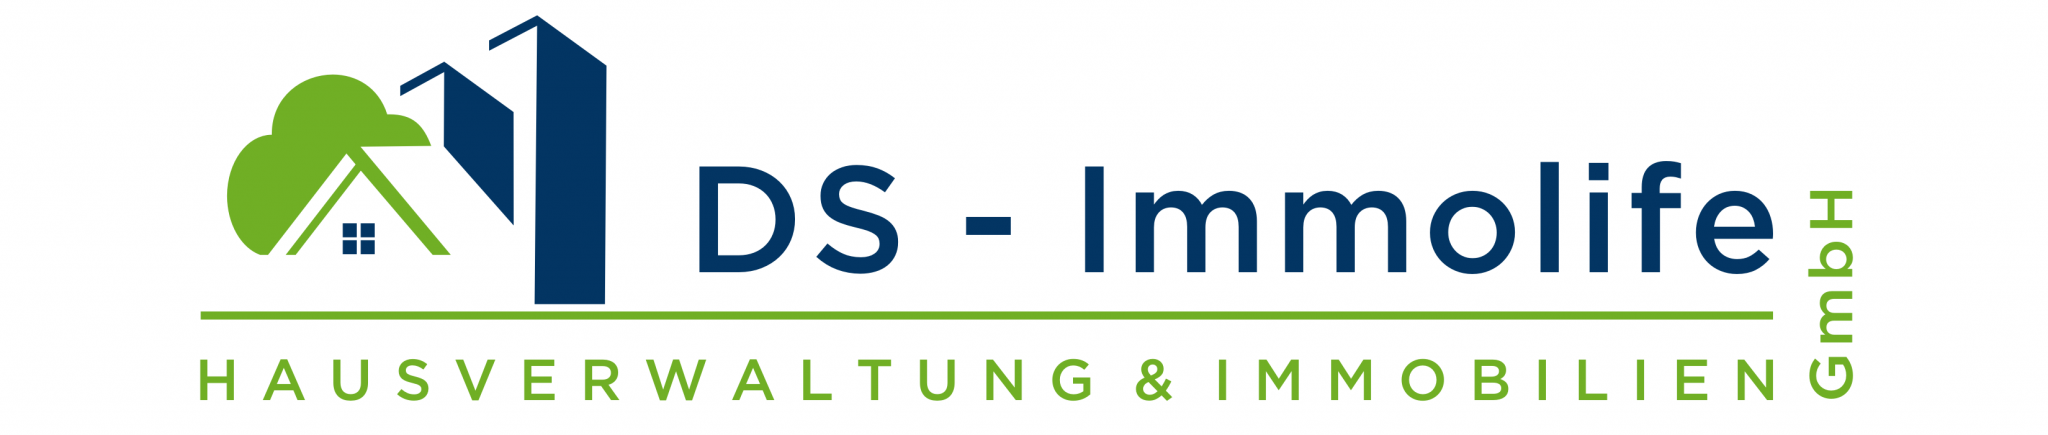 DS-Immolife GmbH